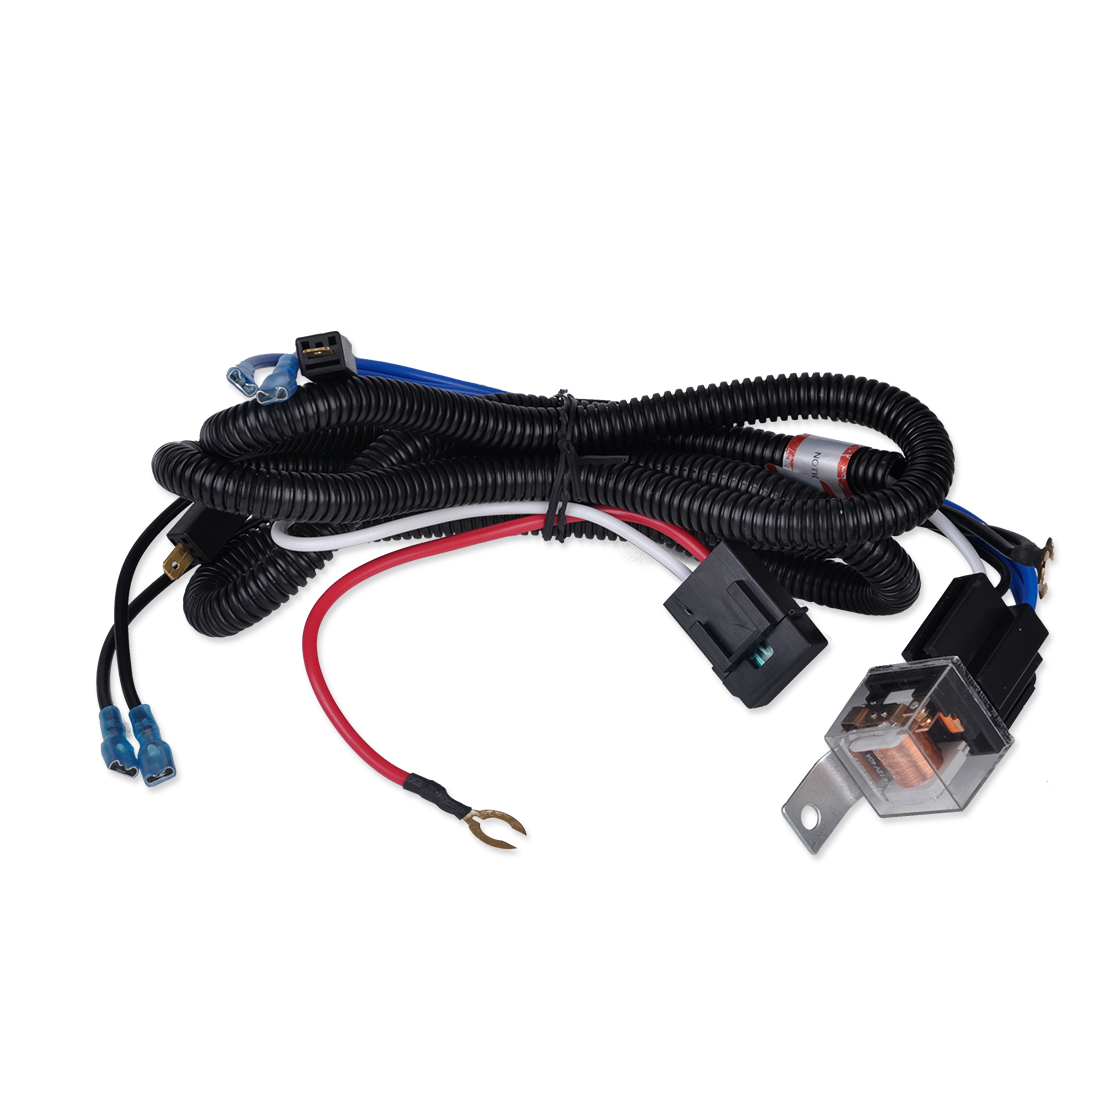 hight resolution of citall 12v car truck grille mount blast tone horn wiring harness relay kit for ford toyota suzuki peugeot kia honda mazda audi in cables adapters sockets